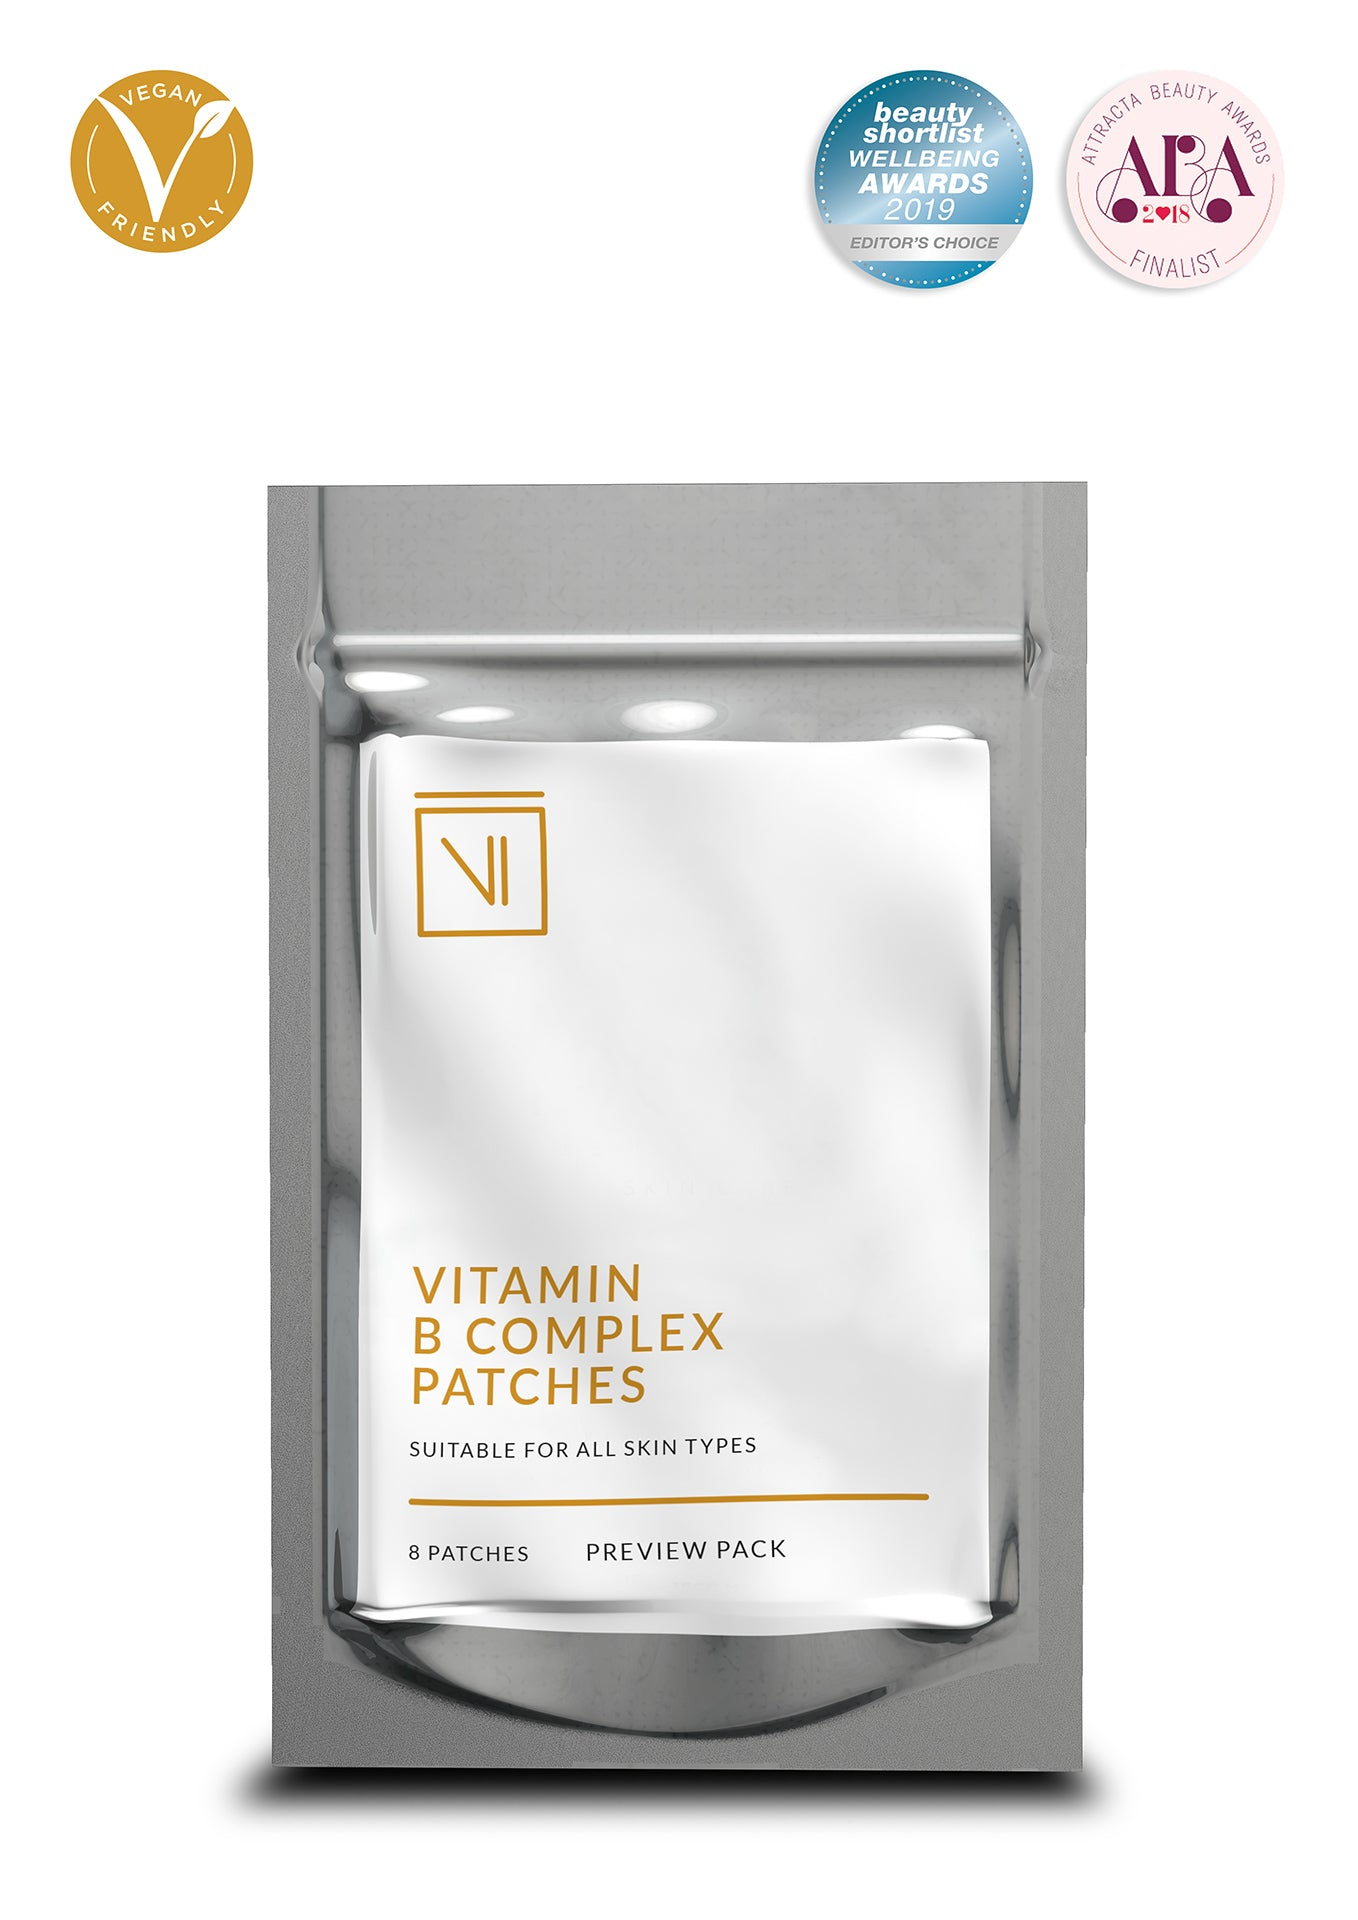 Vitamin B Complex Skin Patches - Preview Pack (8 Patches)